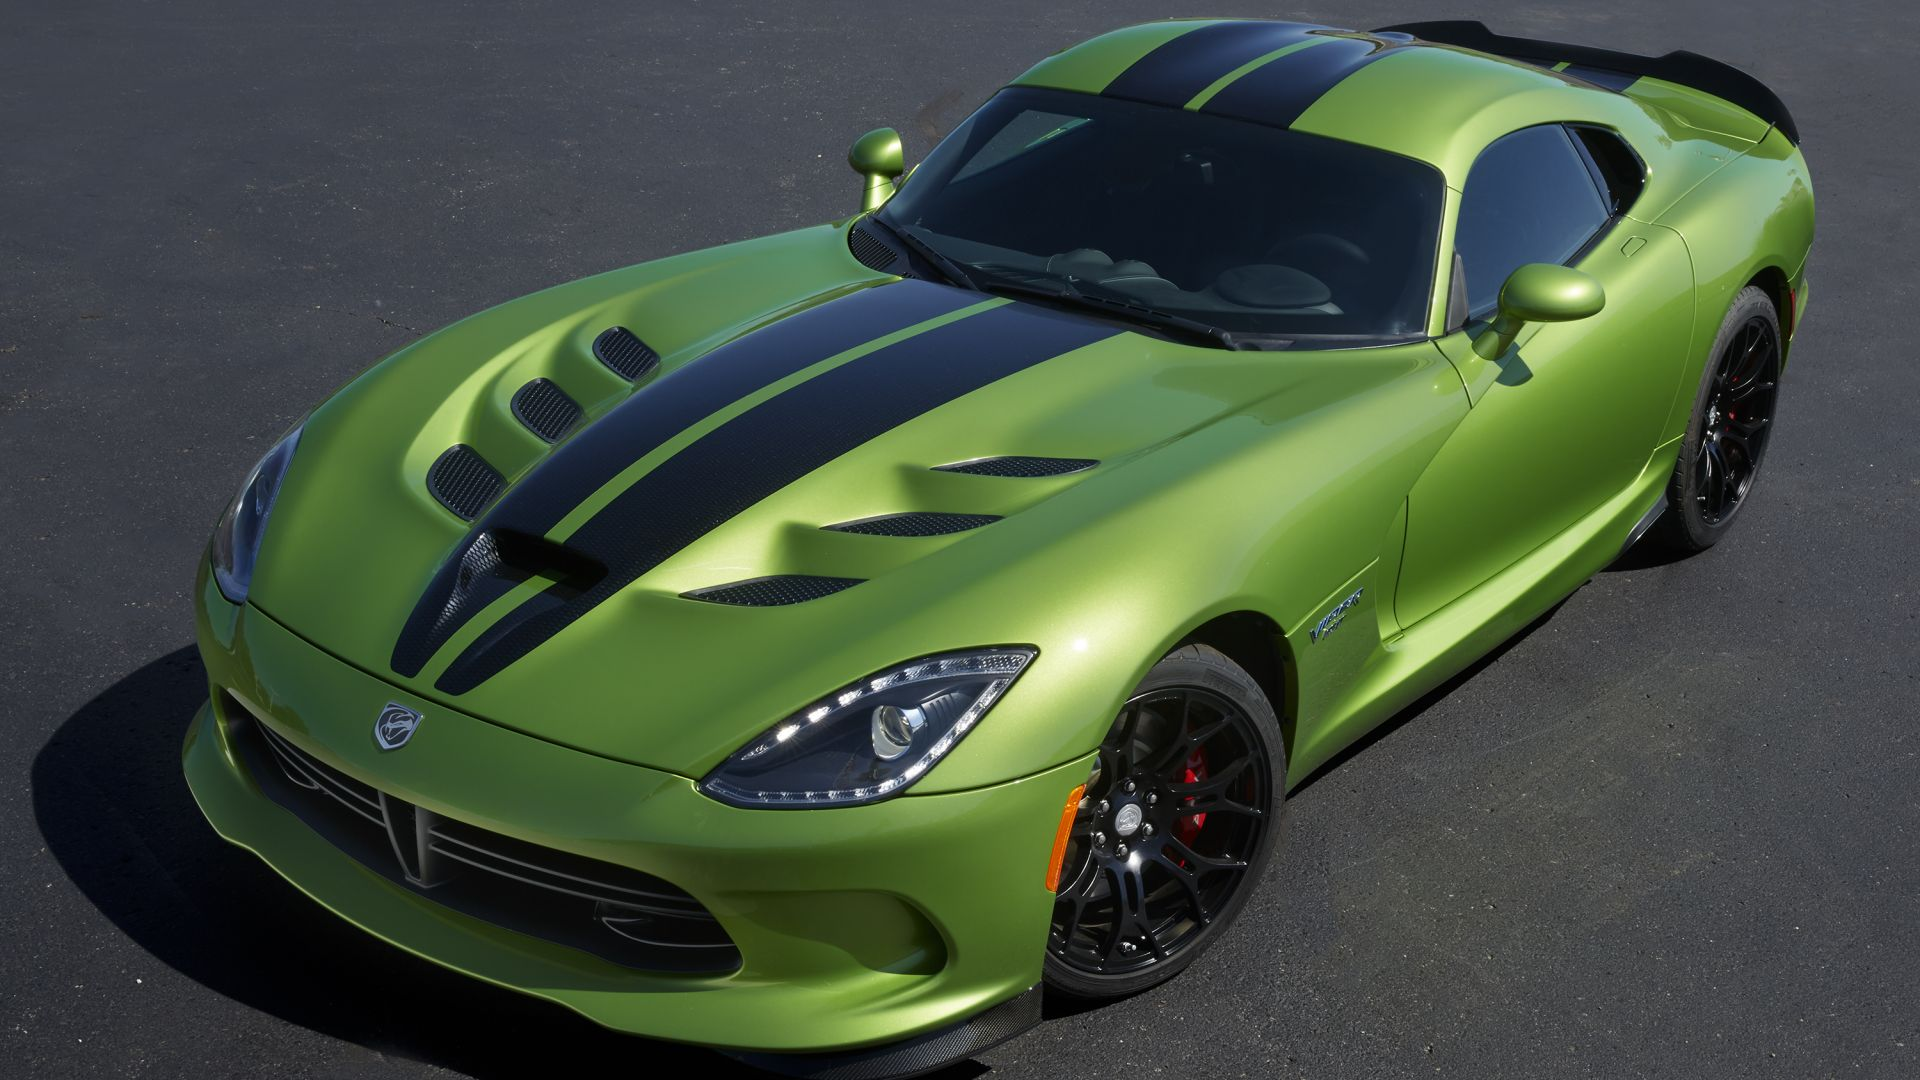 Додж Вайпер ГТС-Р, зеленый, скорость, Dodge Viper GTS-R, Commemorative Edition ACR, green, speed (horizontal)